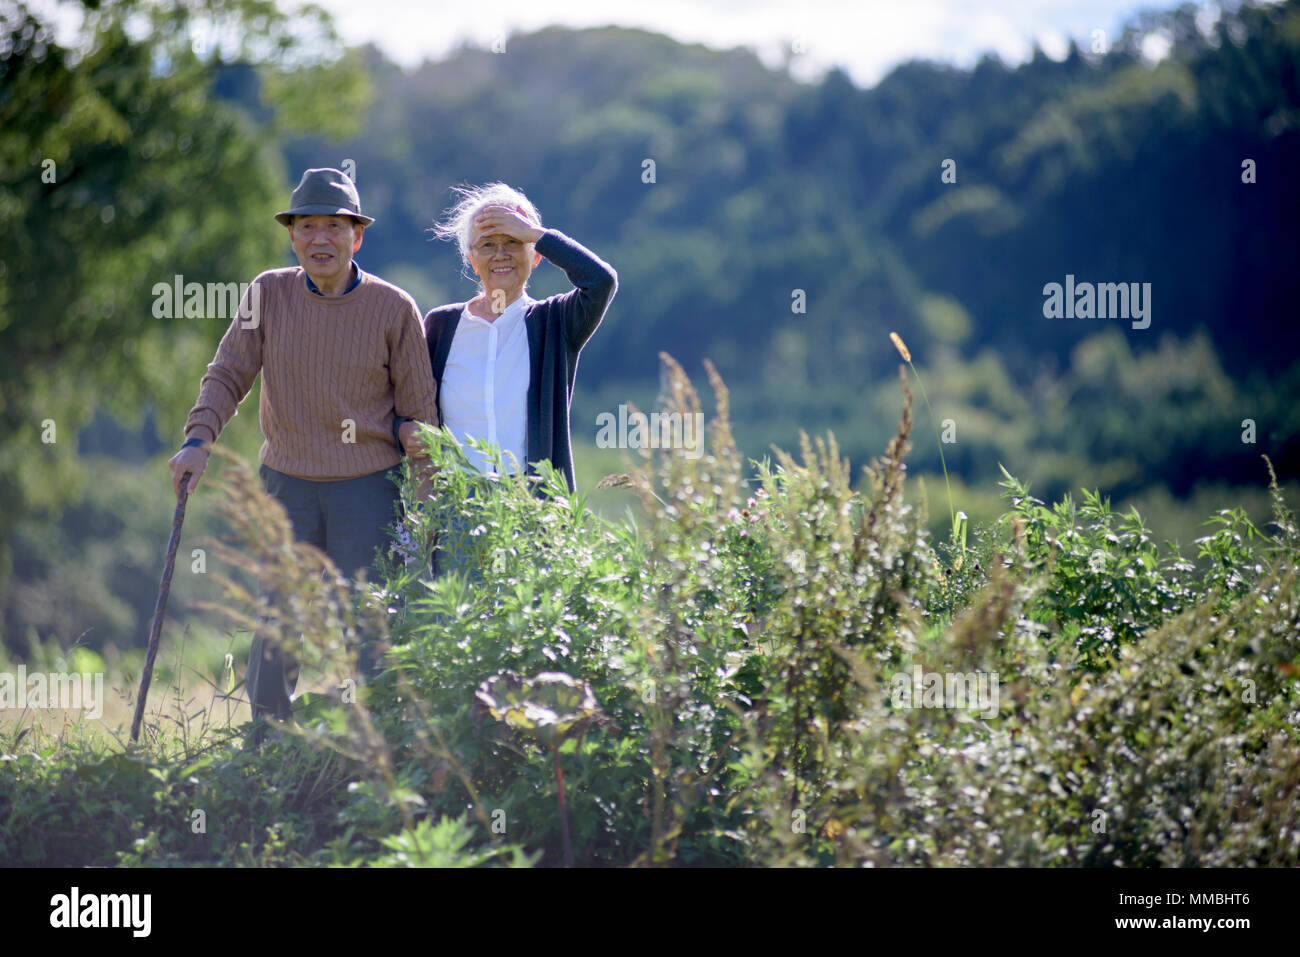 Husband and wife, elderly man wearing hat and using walking stick and elderly woman walking along path. - Stock Image